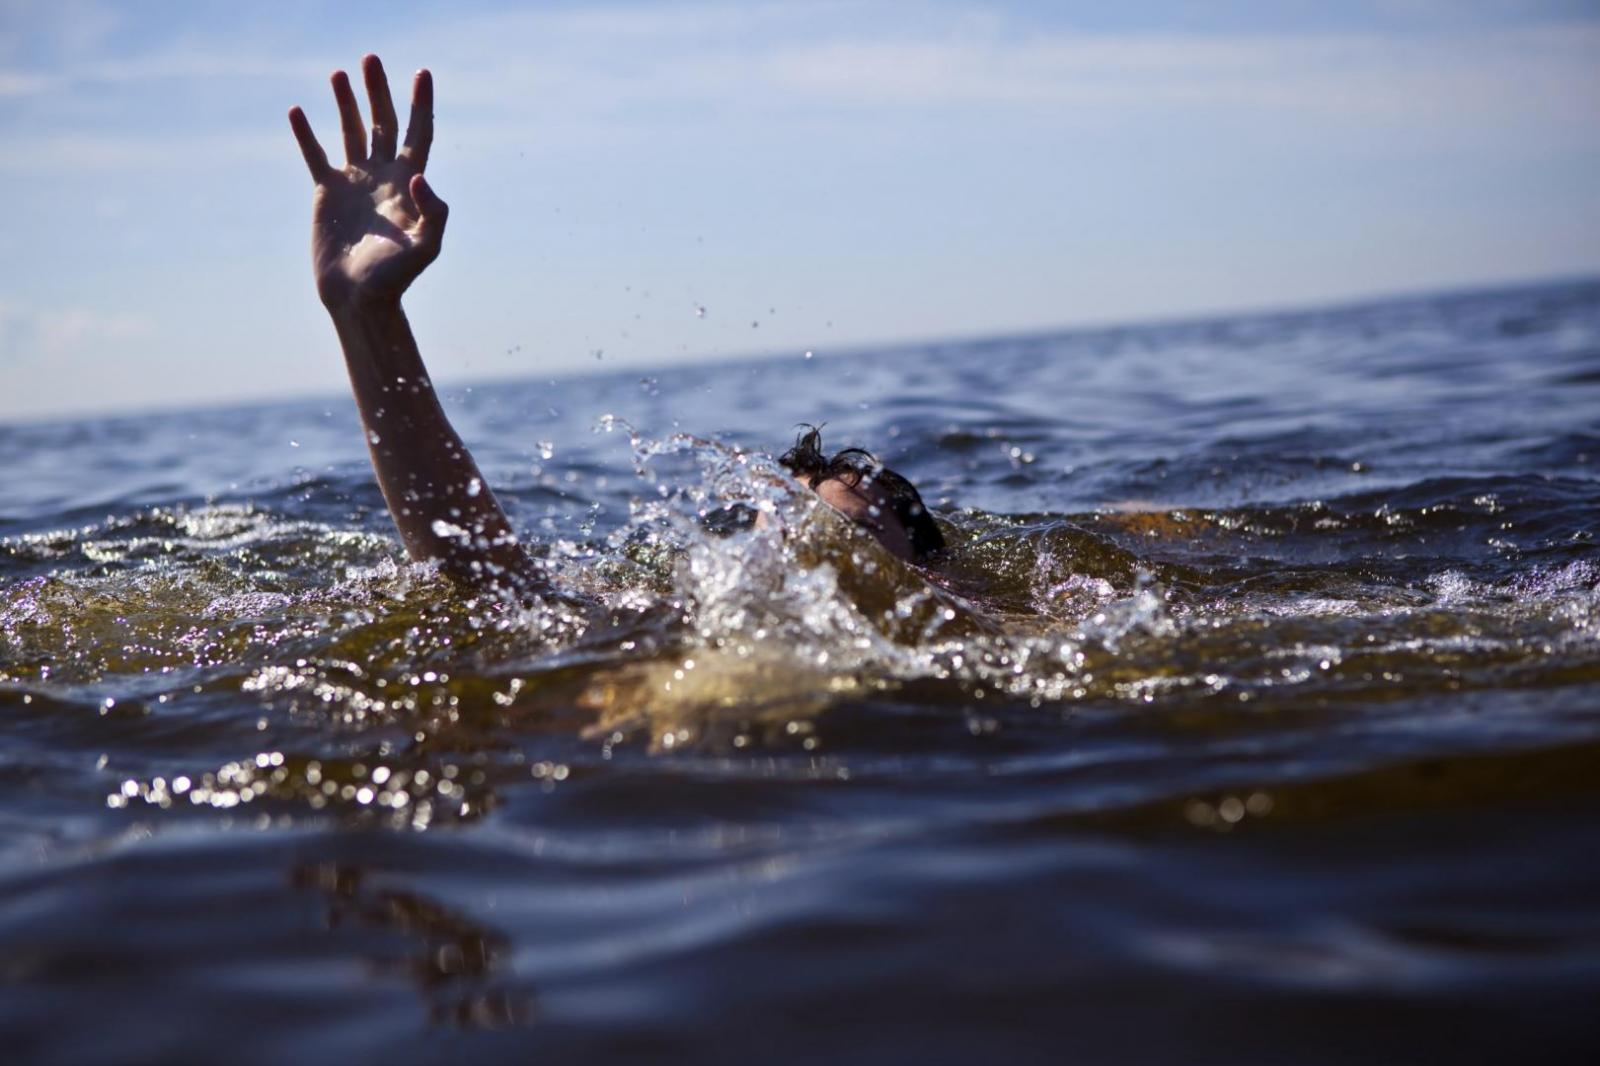 Drowning Prevention in Vietnam and World